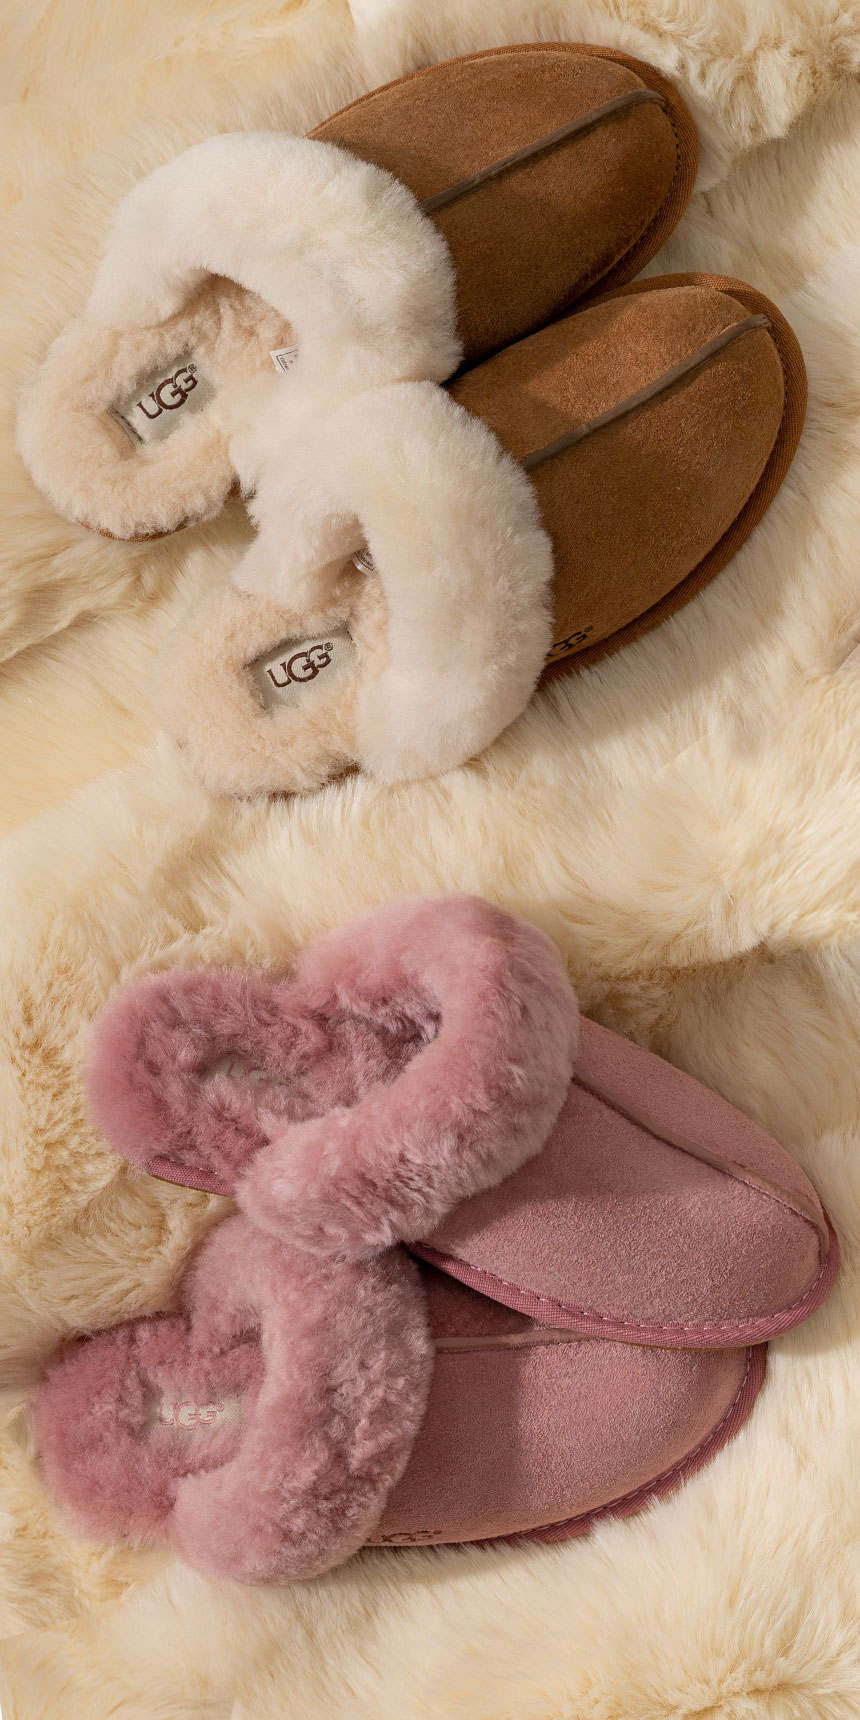 Indulge And Relax with UGG!